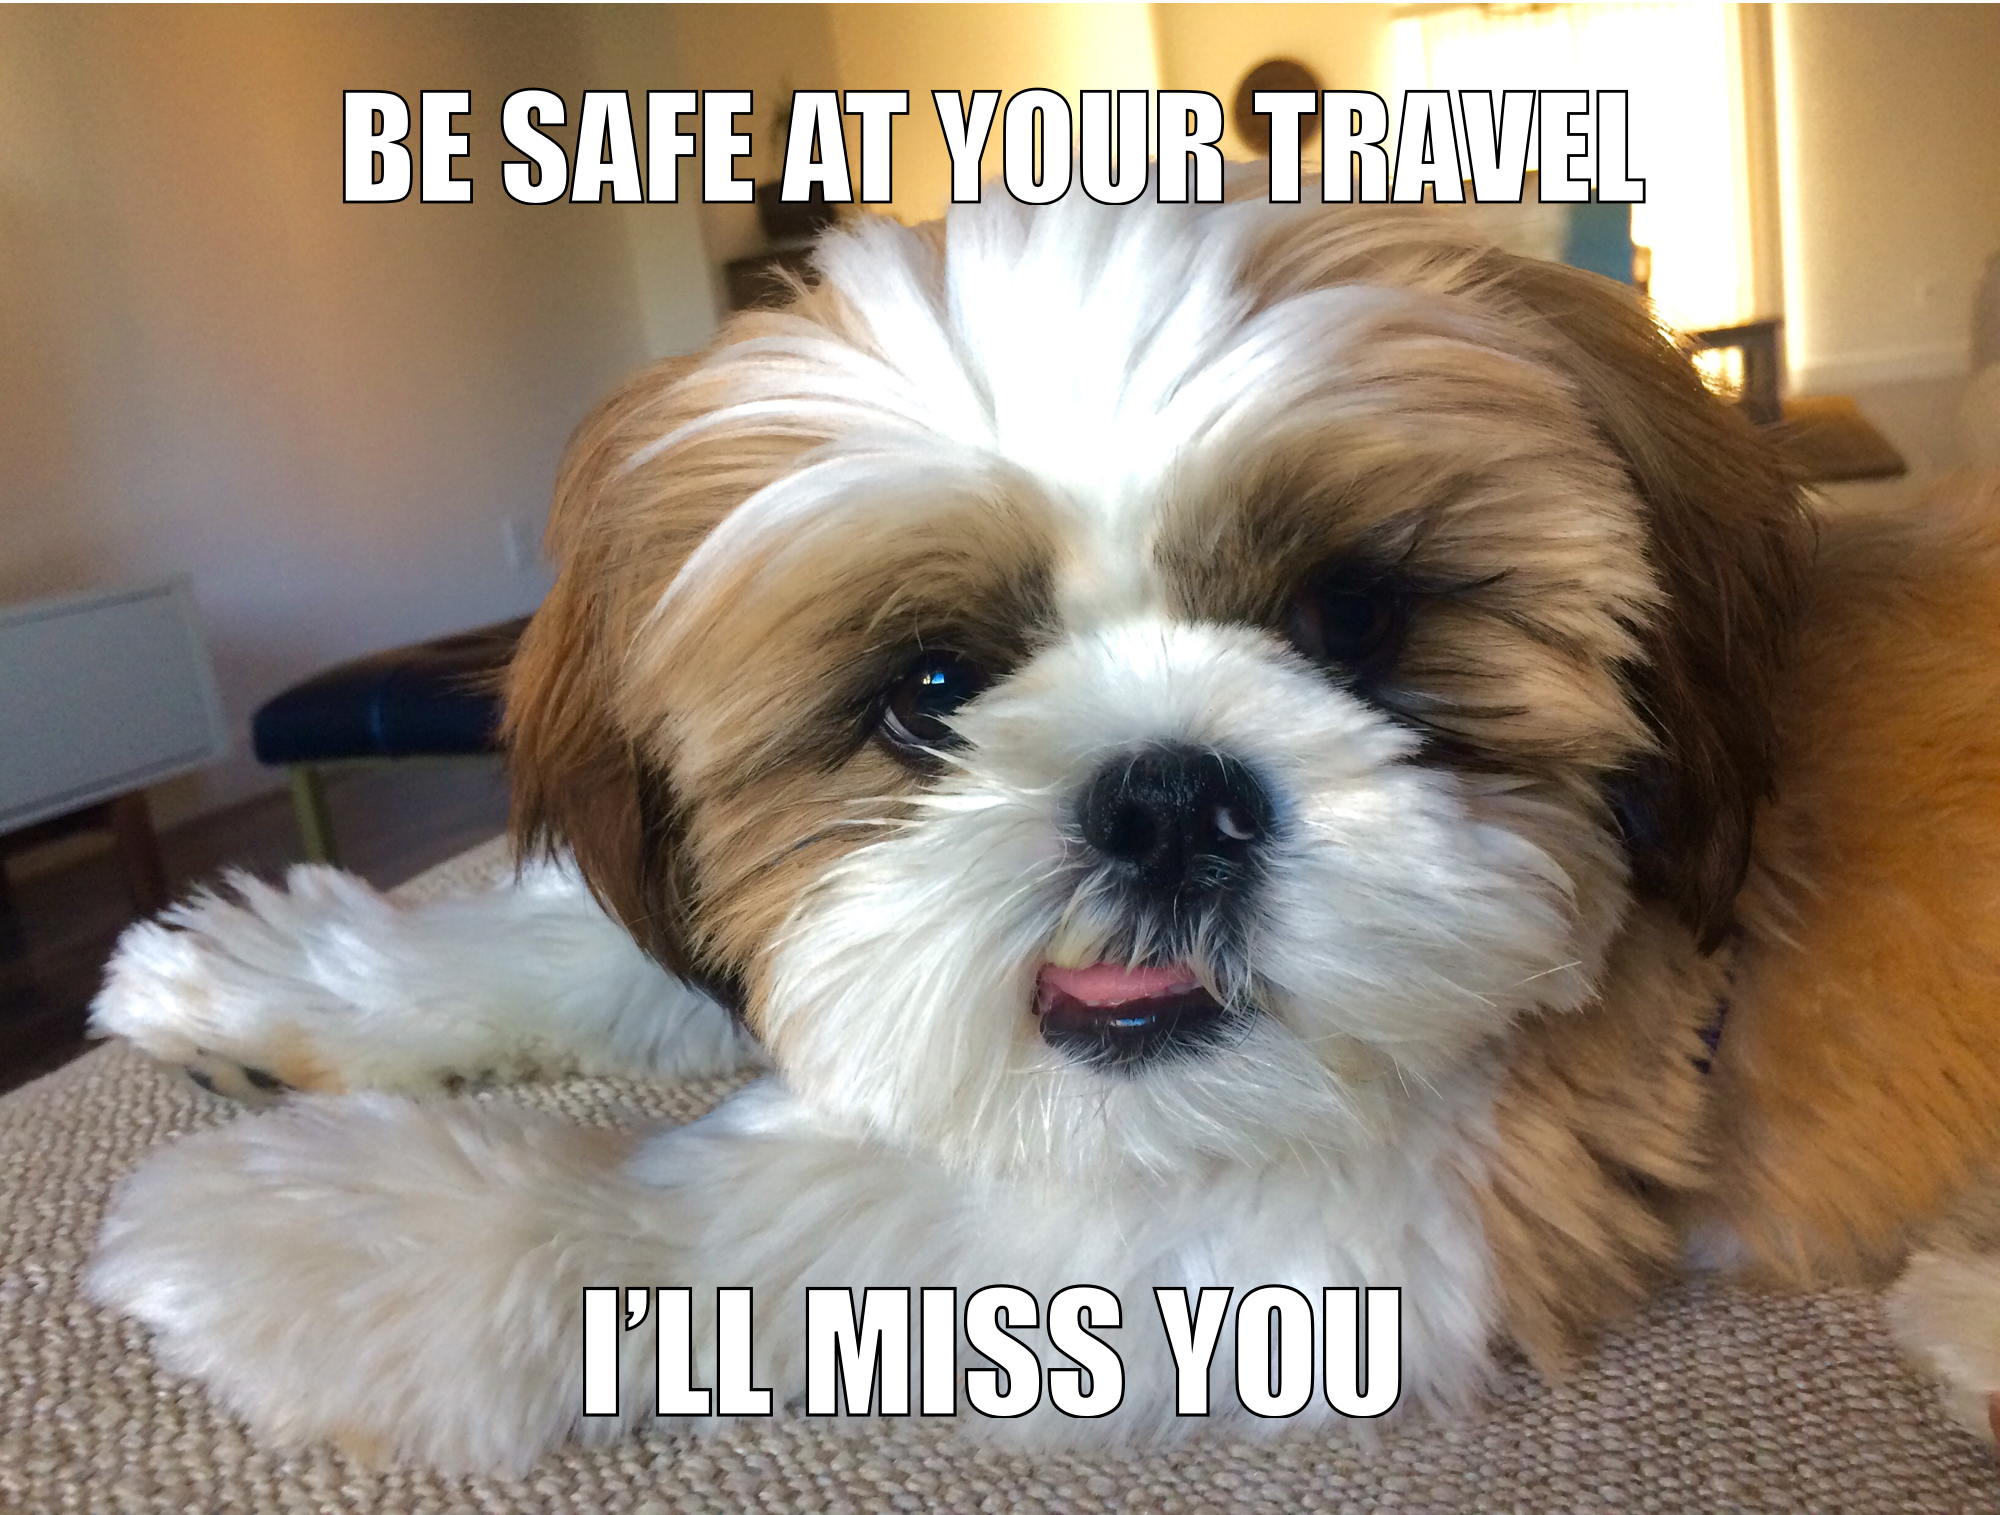 Cute Shih Tzu Puppy Travel Meme Be Safe At Your Travel Ill Miss